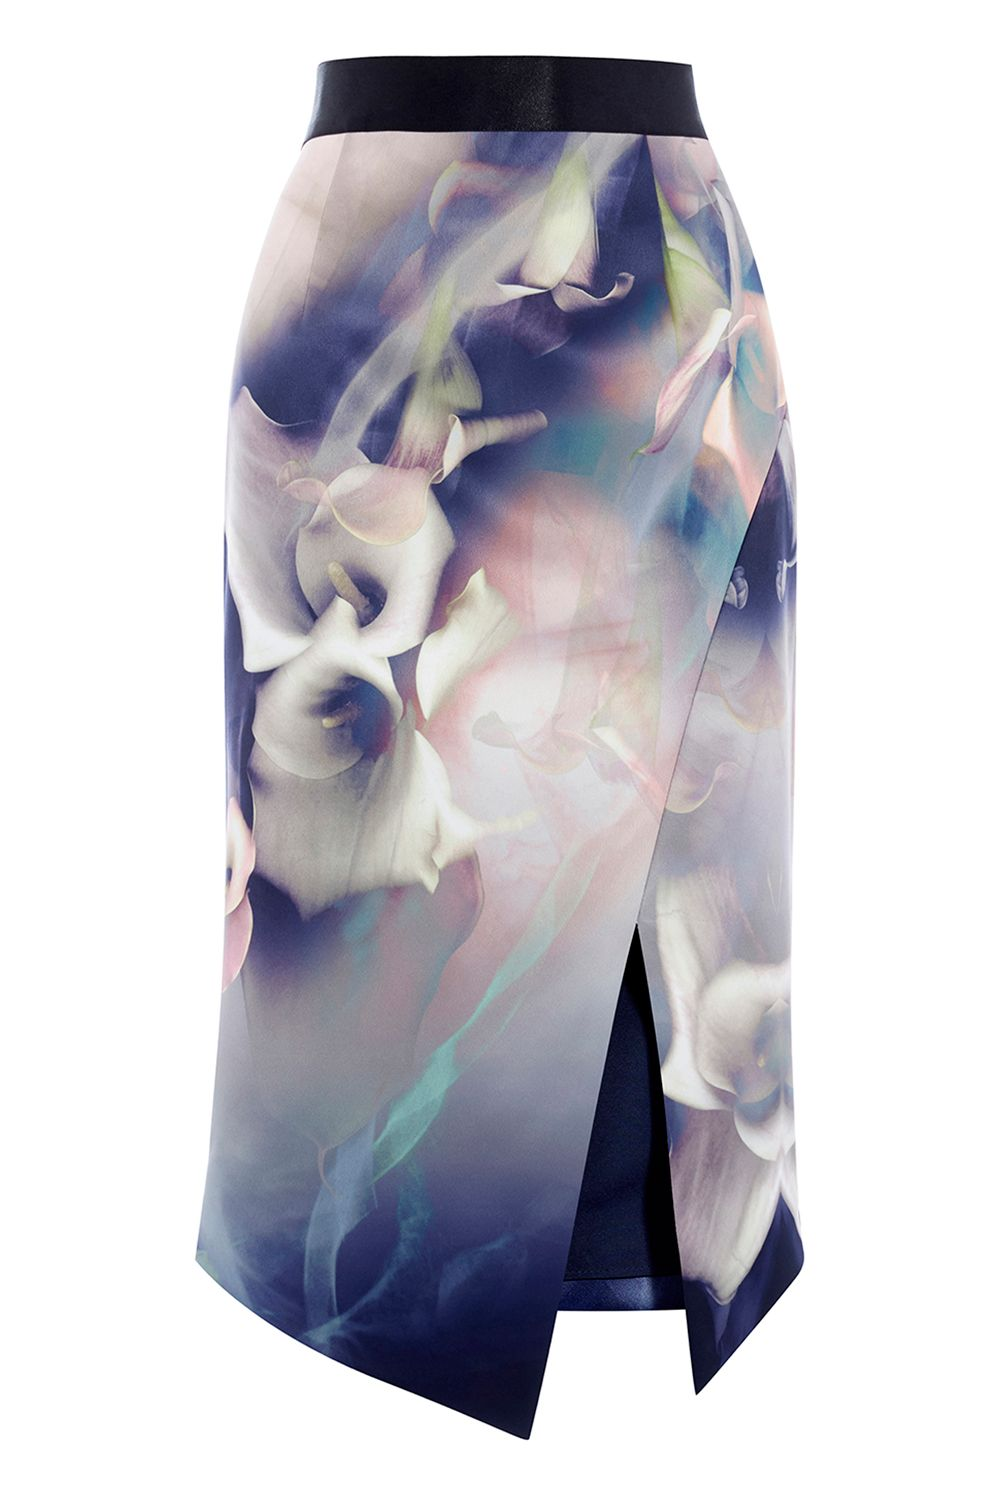 Coast Selenis Printed Pencil Skirt, Multi-Coloured